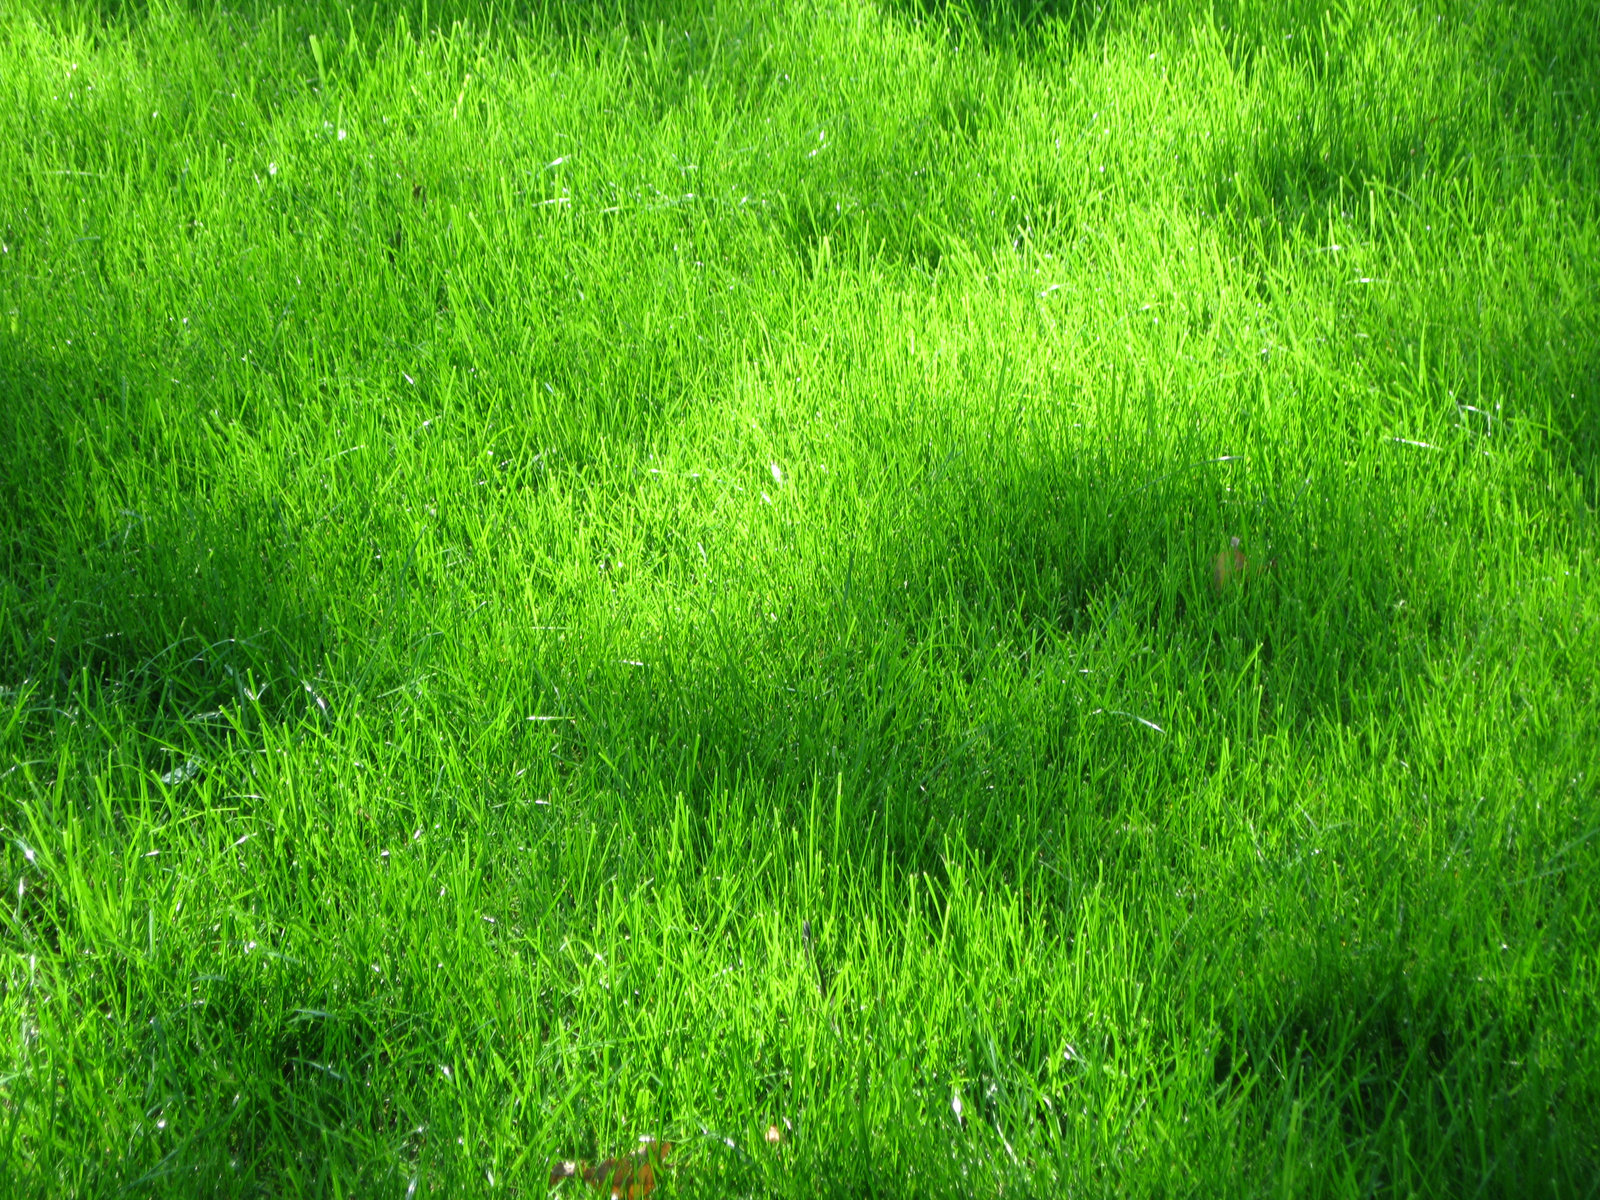 grass background texture - photo #27